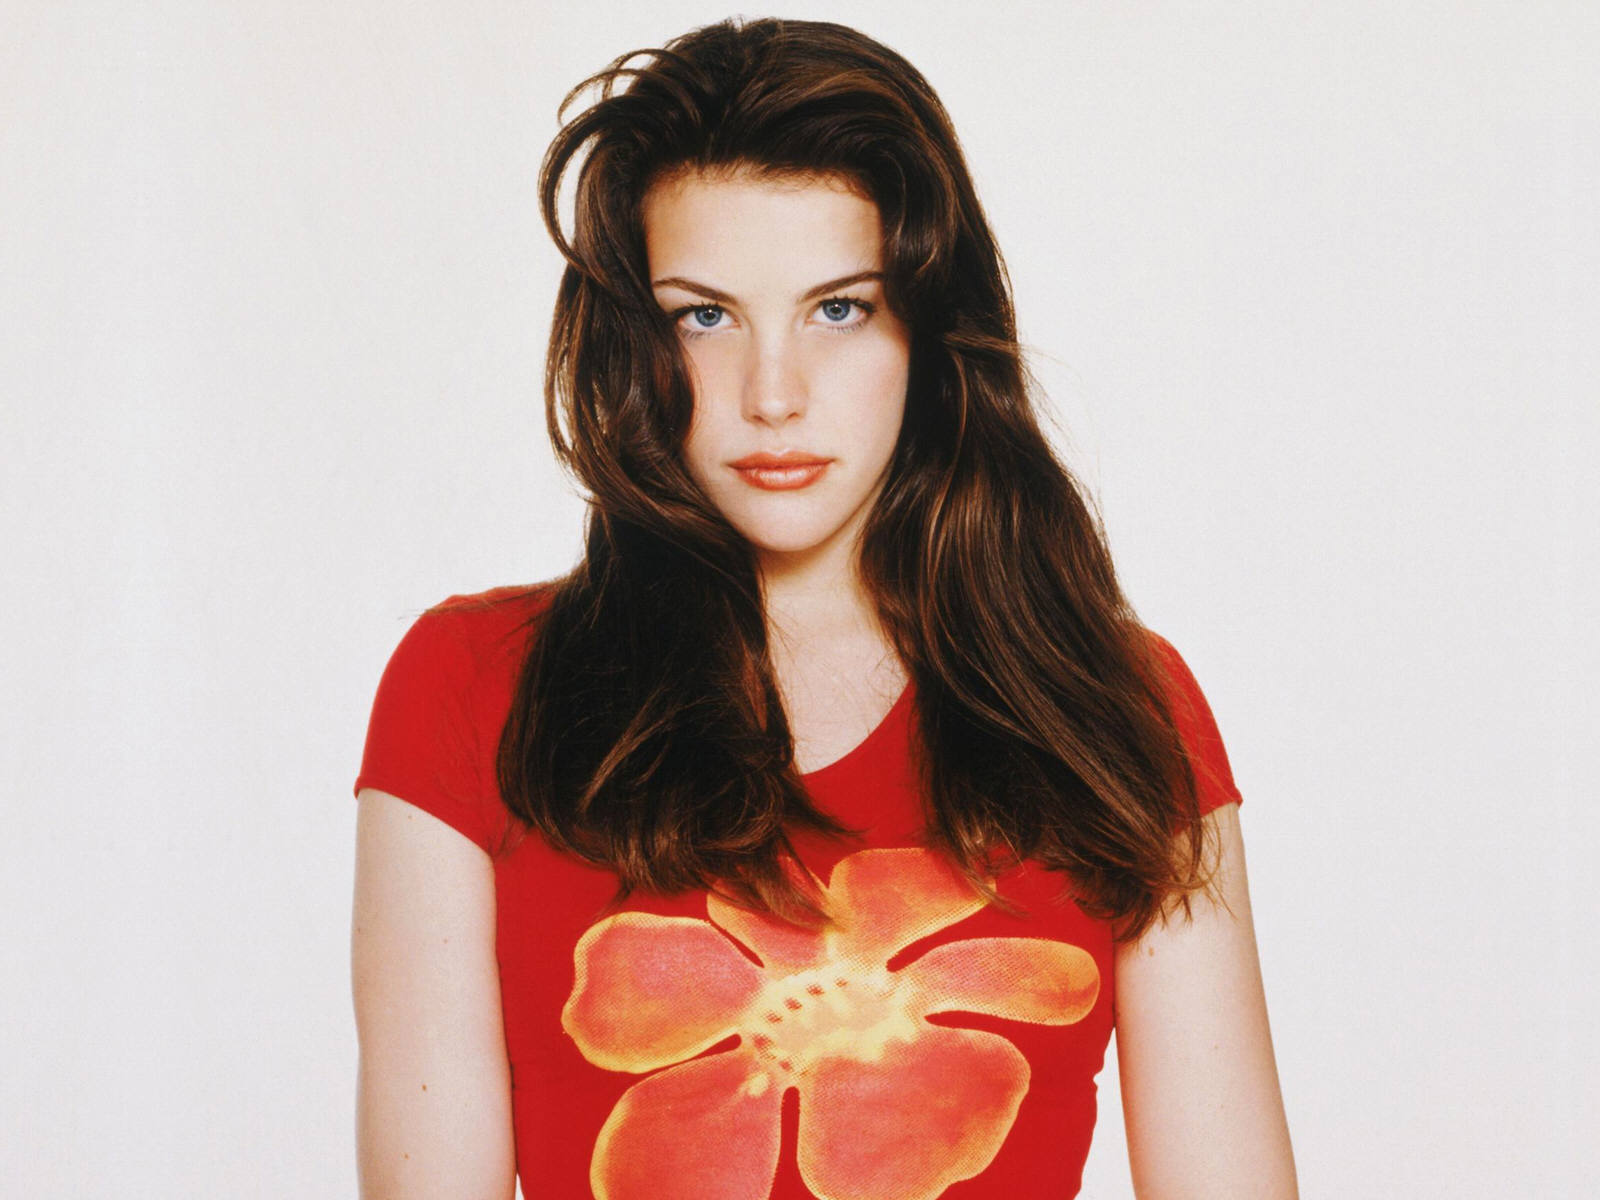 liv tyler in empire records (1995)